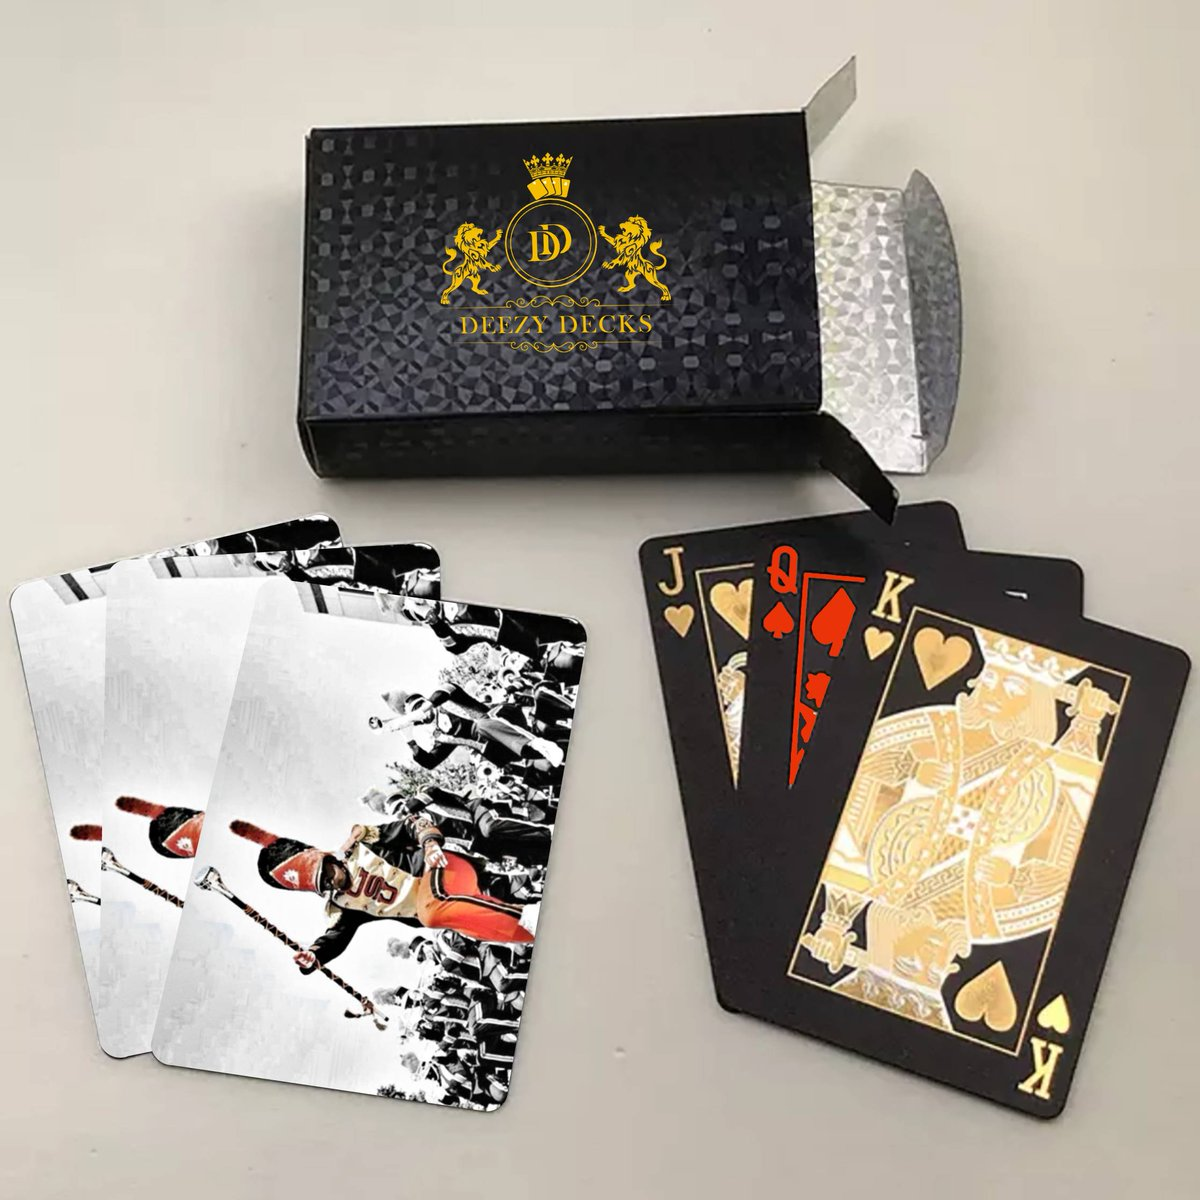 🔥TAG-A-FRIEND WHOS LOVES GRAMBLING'S BAND!🔥 ♠️ 24k GOLD PLAYING CARDS ♦️ Waterproof  ♣️ Engraved Wood Box With Each Purchase  ♥️Customized for HBCUs, Greek Letter Orgs, Marching Bands, and Other Black Culture Designs  https://t.co/7SoINDT1ar  #deezydecks #hbcu #GSU #GRAMBLING https://t.co/yzJd9BgfVN